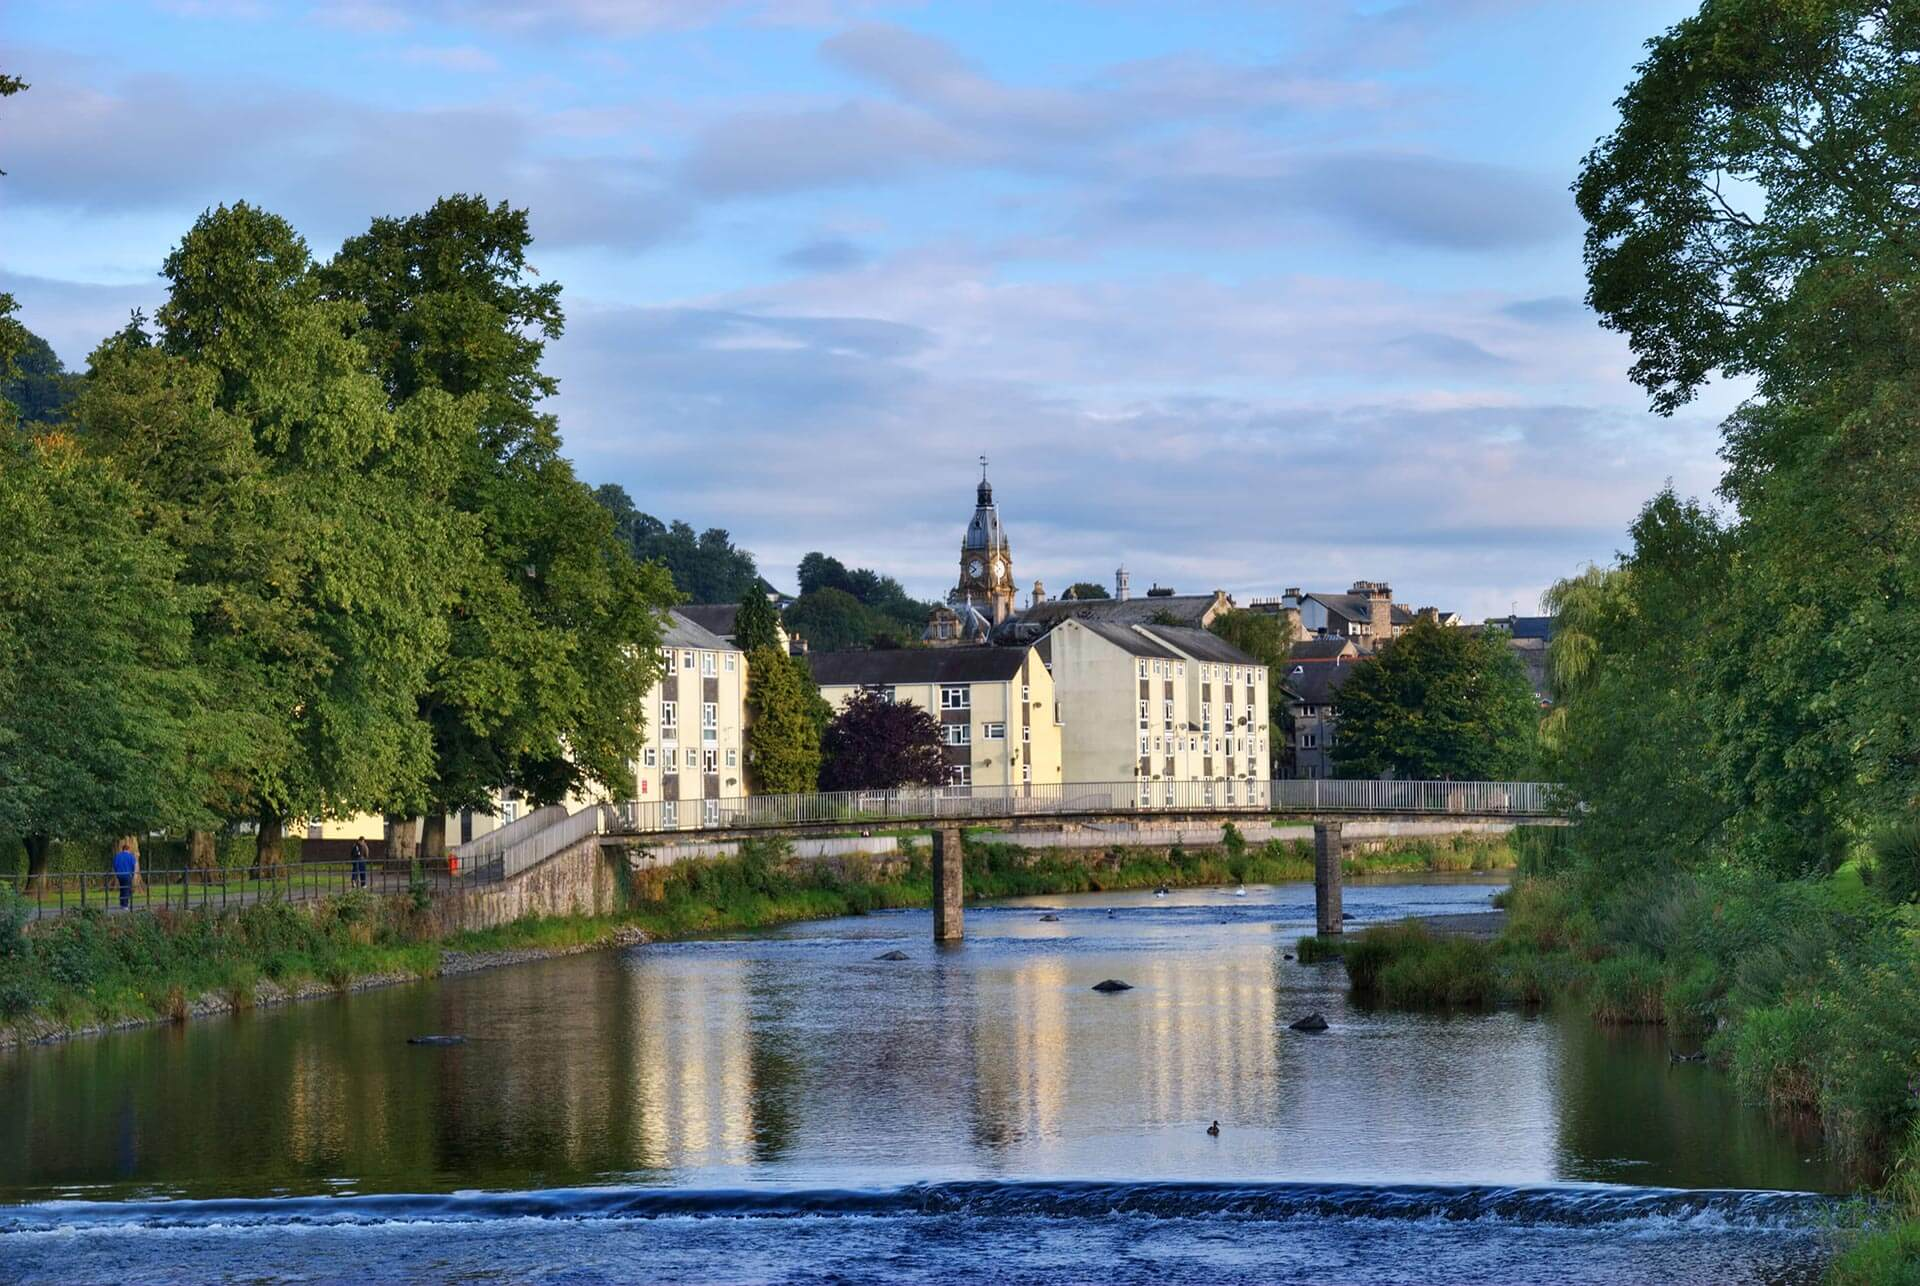 Houses and Greenery Lining the River in Kendal